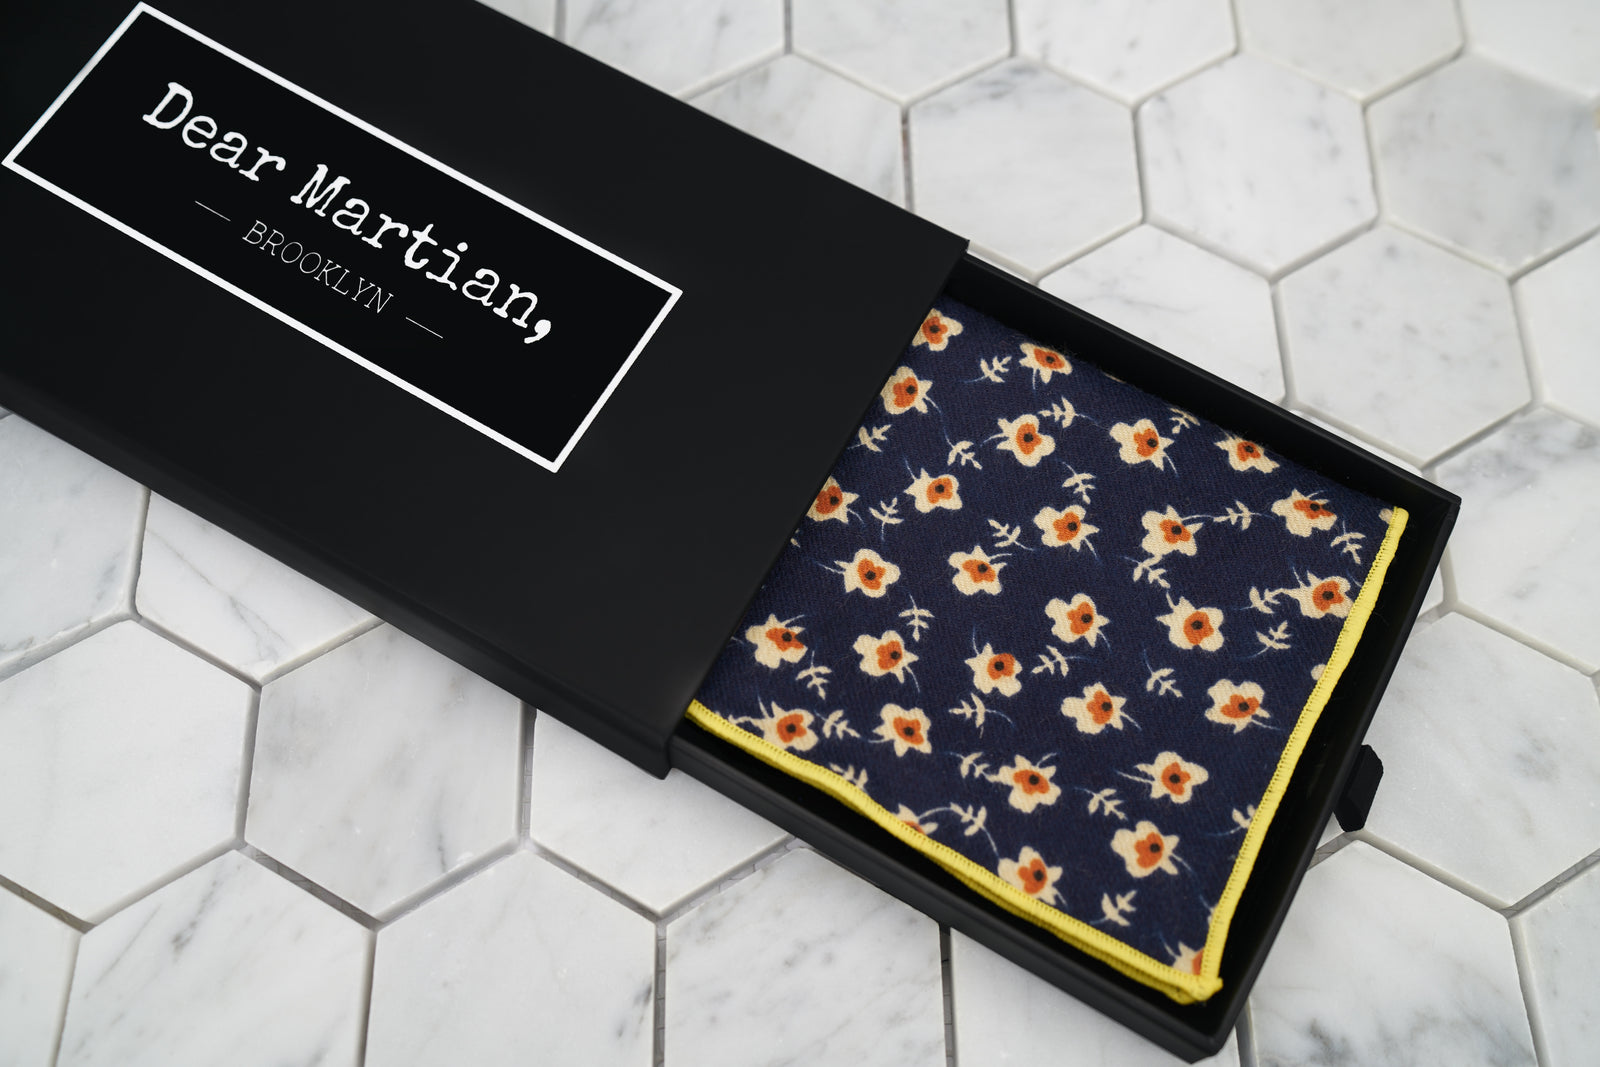 An image of the Dear Martian, Brooklyn black pull-out style box. Inside the box is our sunny eyed floral handkerchief.